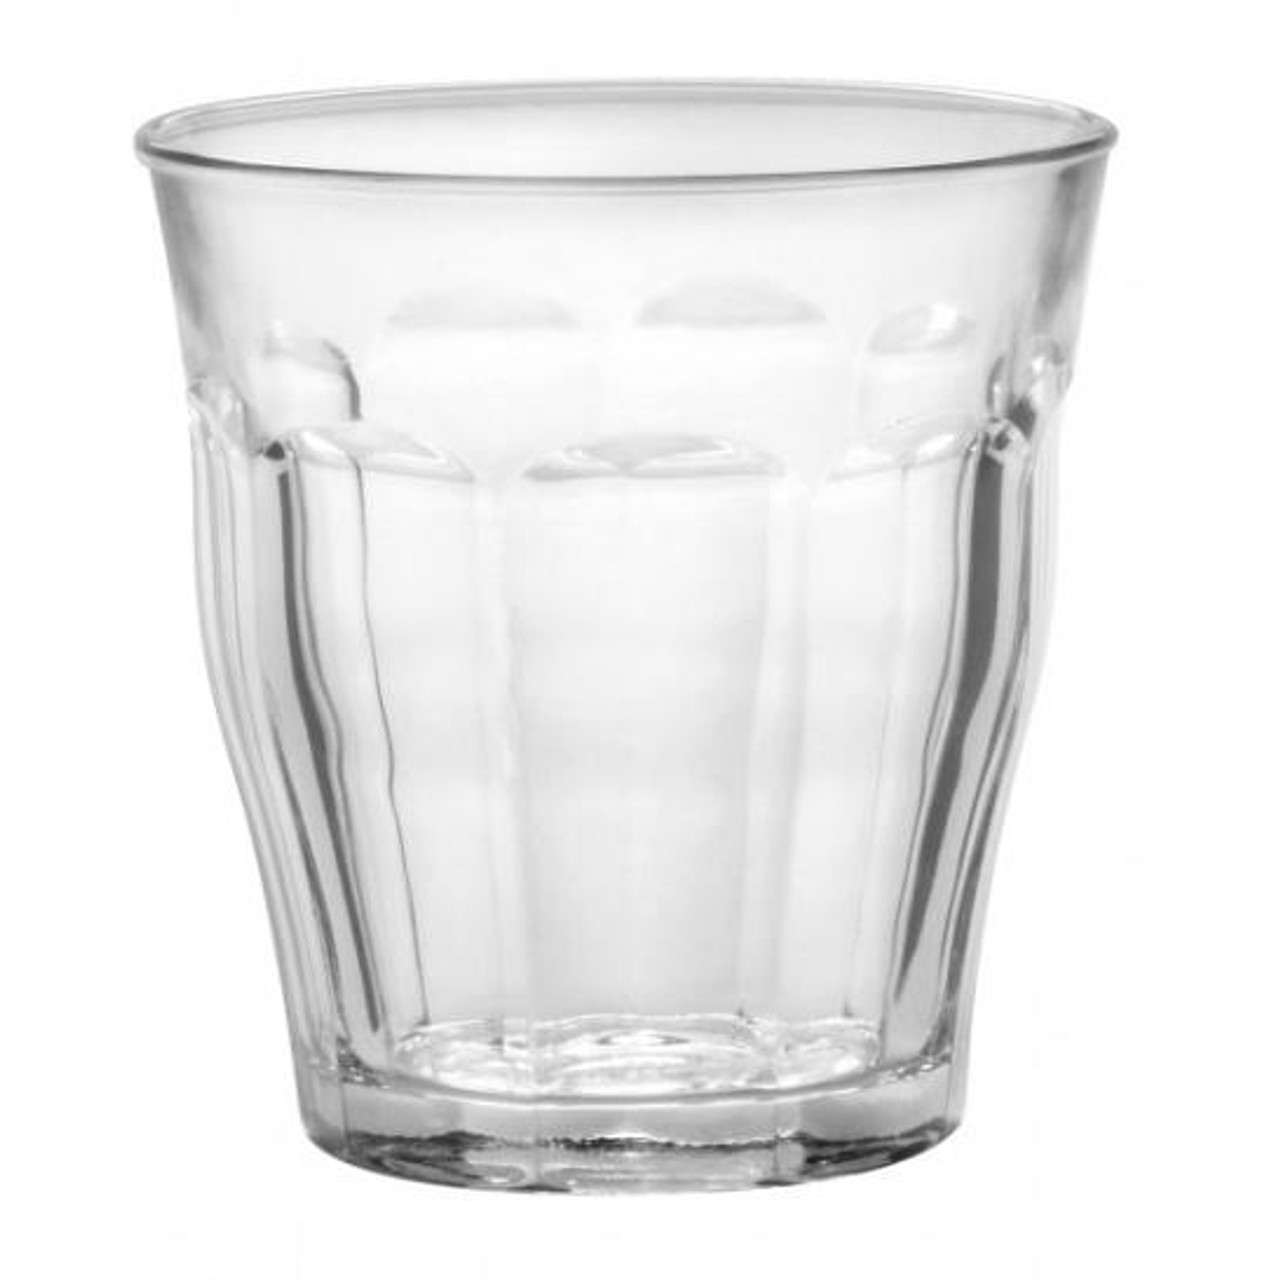 DURALEX PICARDIE CLEAR TUMBLER - 310ml - SET/6